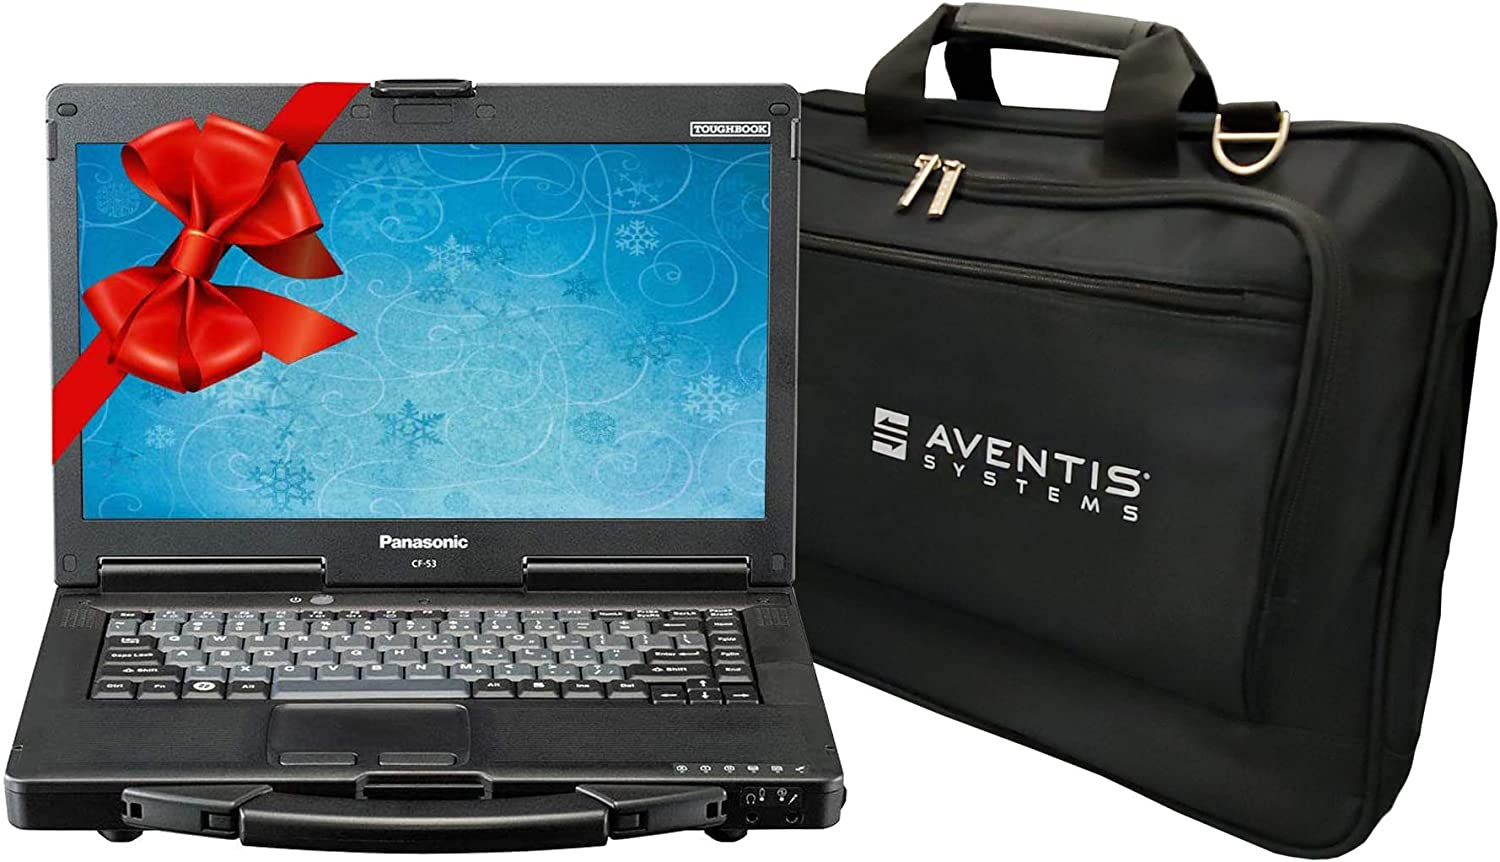 Panasonic Toughbook CF-53 Laptop PC, Intel i5-2520M 2.5GHz, 16GB RAM, 1TB SSD, Windows 10, Touchscreen, Laptop Bag (Renewed)